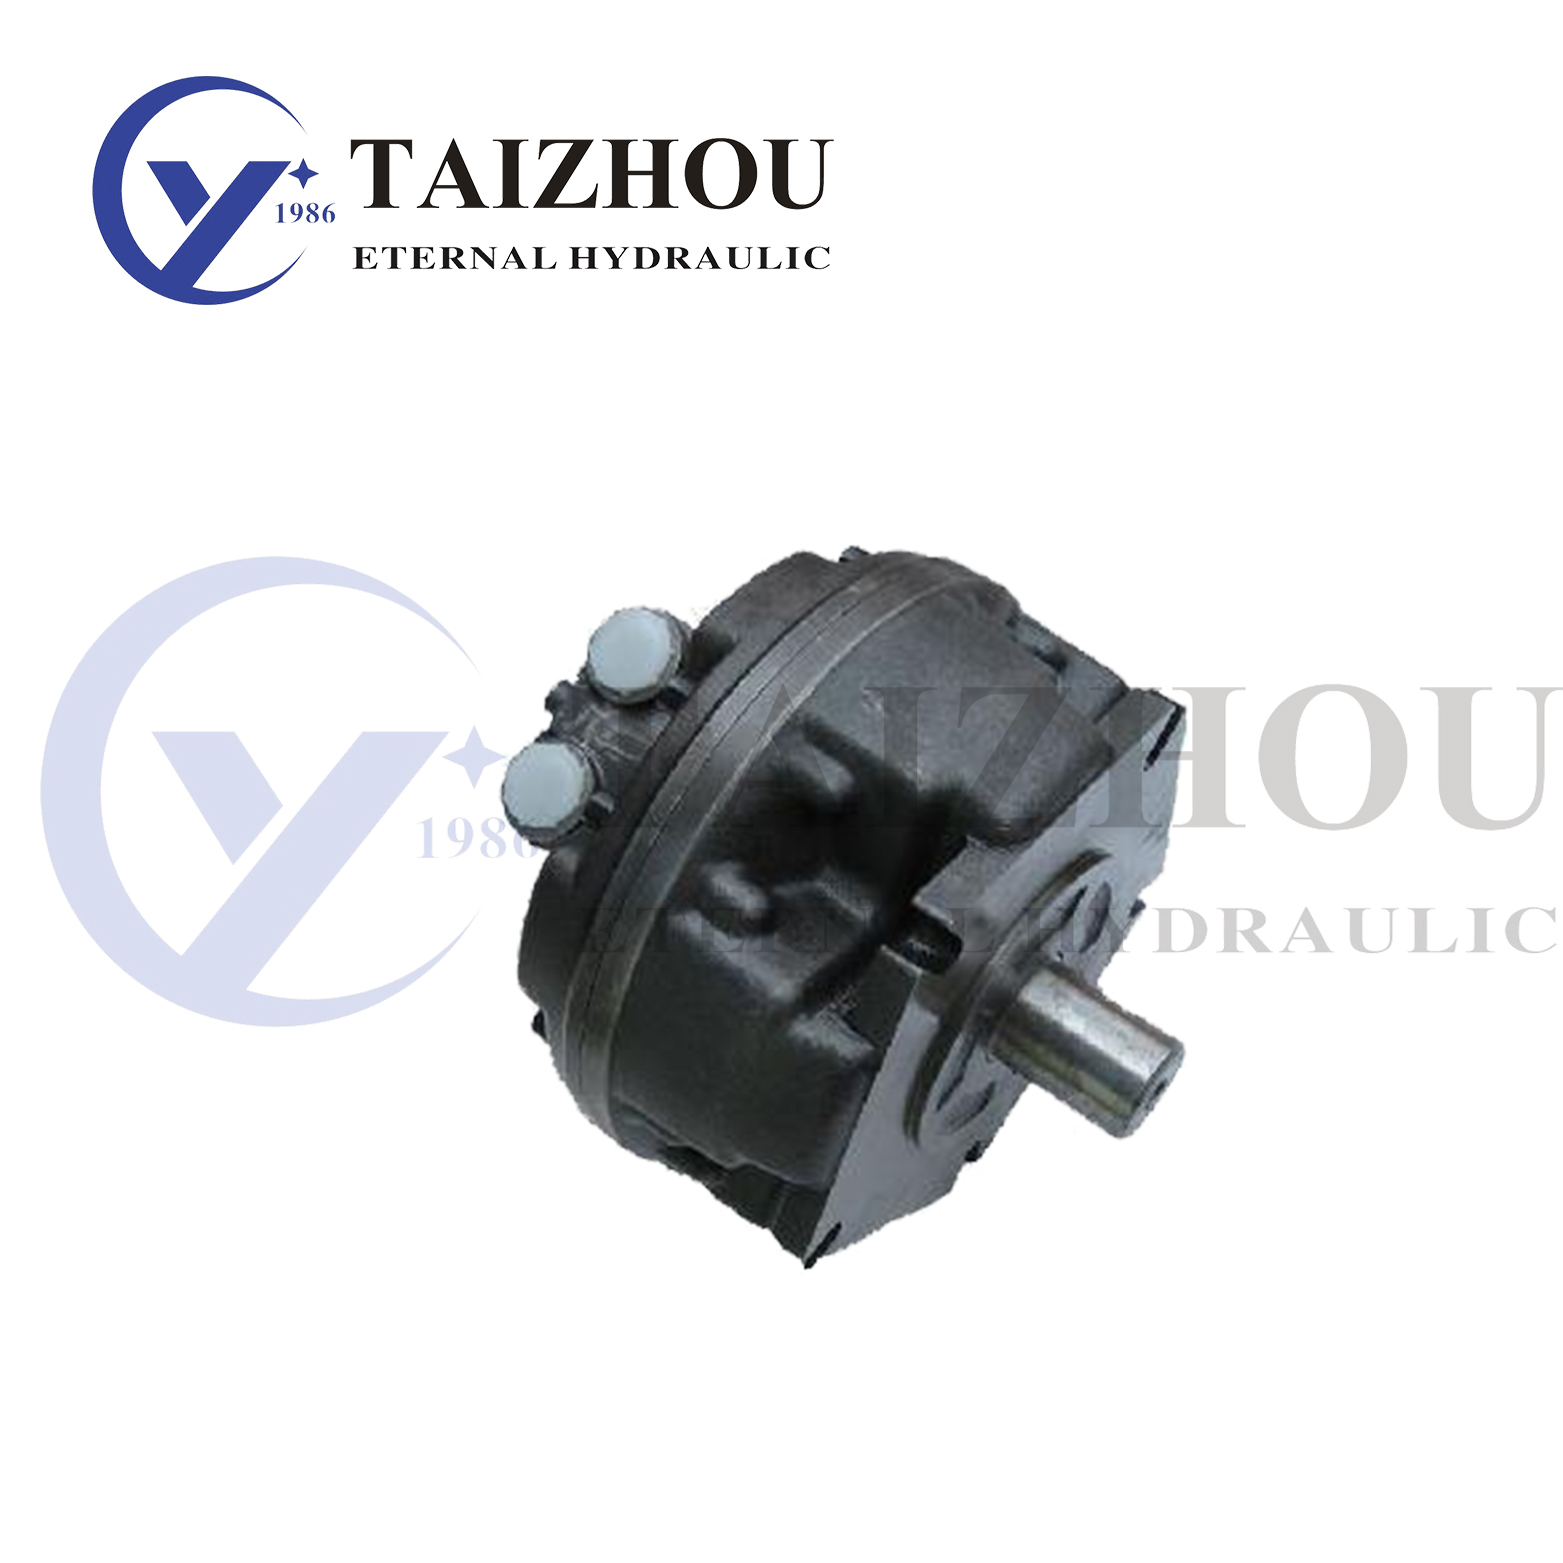 GM Radial Piston Hydraulic Motor